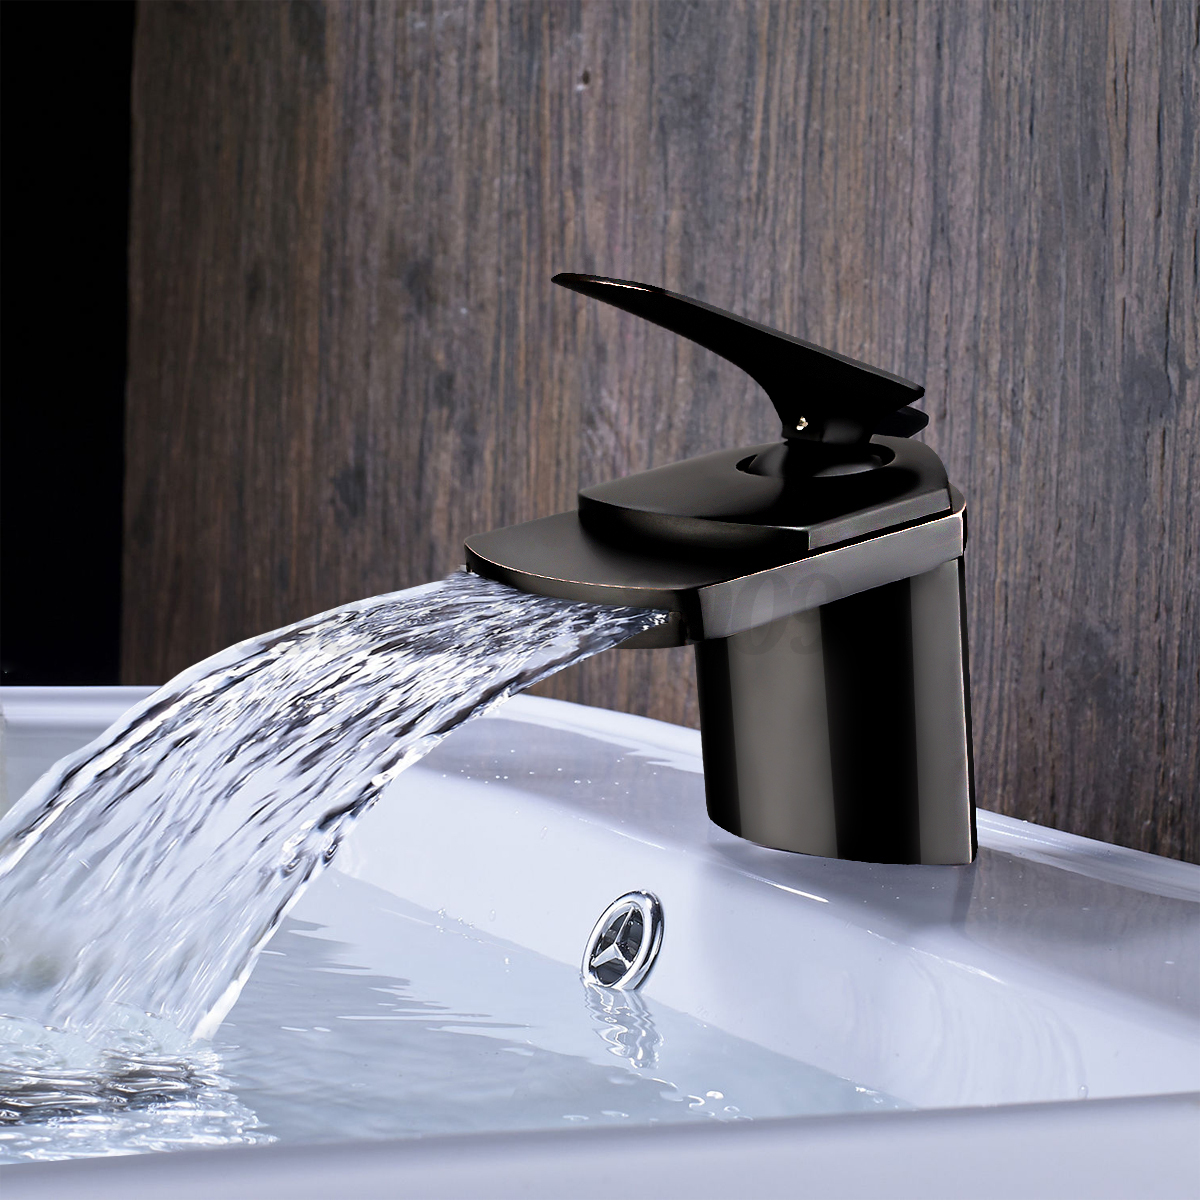 Oil rubbed bronze bathroom waterfall faucet sink vessel basin kitchen mixer tap ebay for Fountain faucets for the bathroom